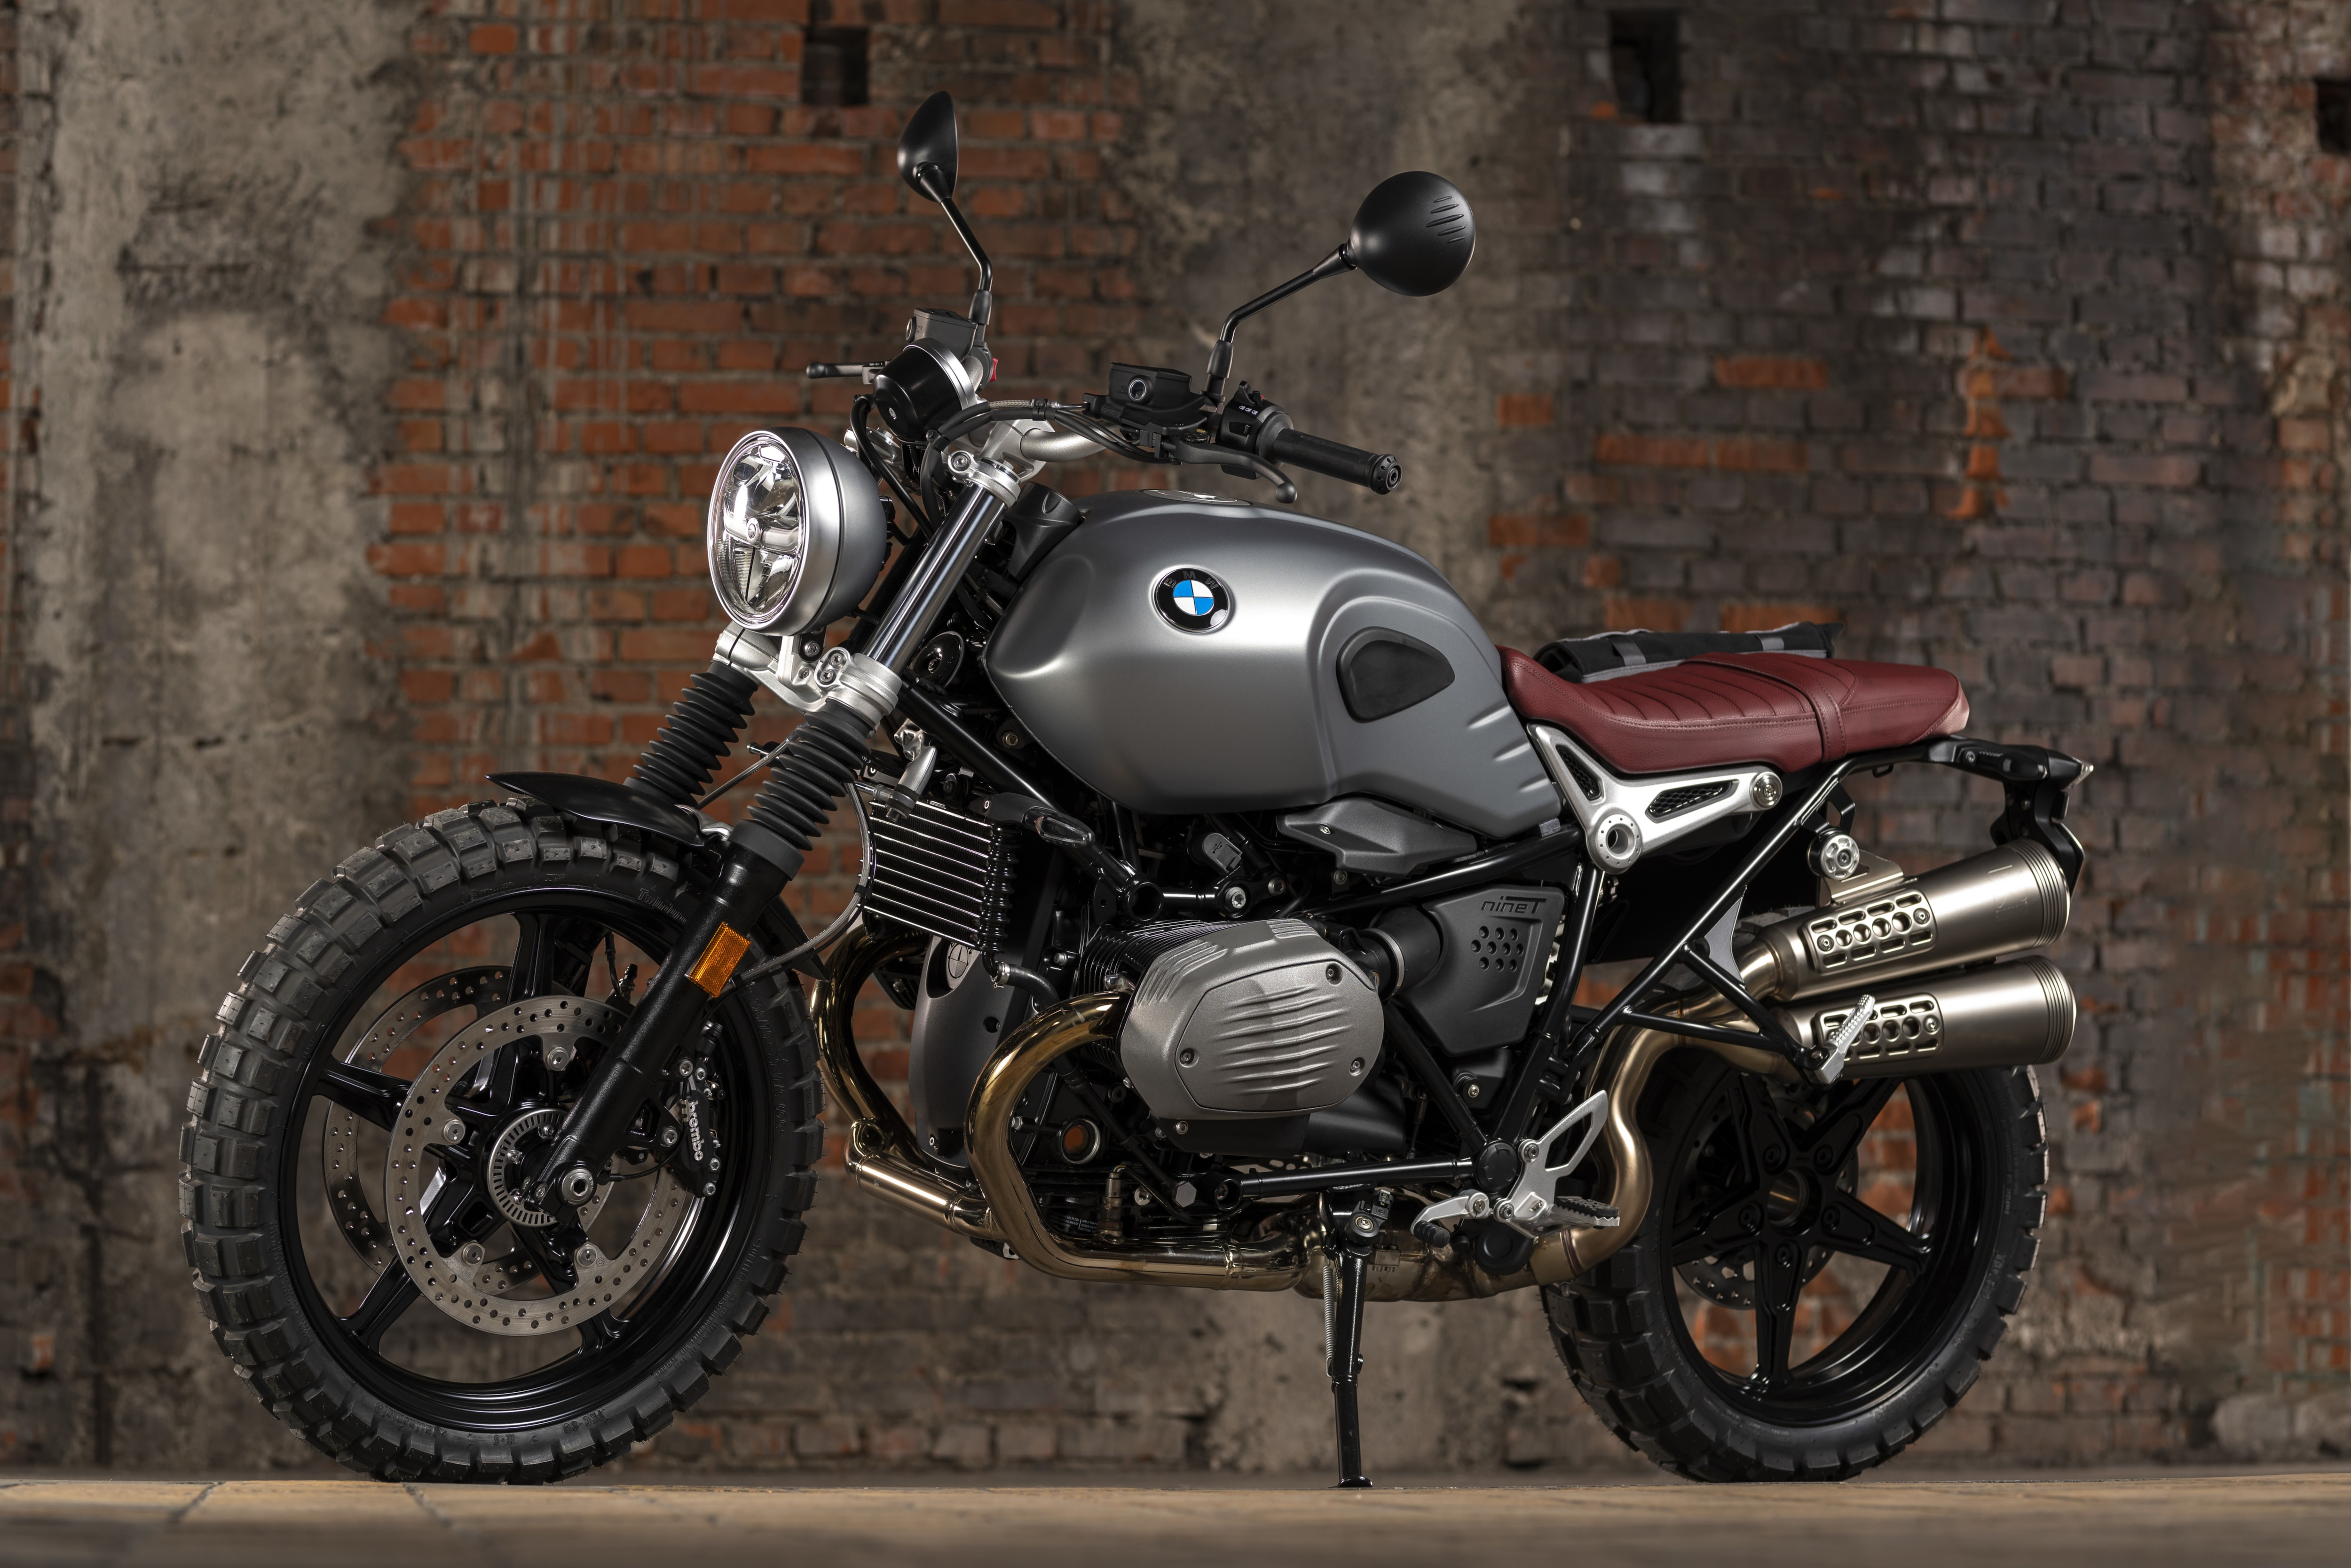 The bikes' powertrain is known to deliver a maximum power output of 109 Hp at 7,520 rpm and a peak torque of 119 Nm at 6,000 rpm. It comes mated to a six-speed transmission. It propels the motorcycles from 0 – 100 km/hr in just 3.5 seconds. Both bikes are capable of achieving a top speed of 200 kmph. (In pic: The BMW R nineT Scrambler)